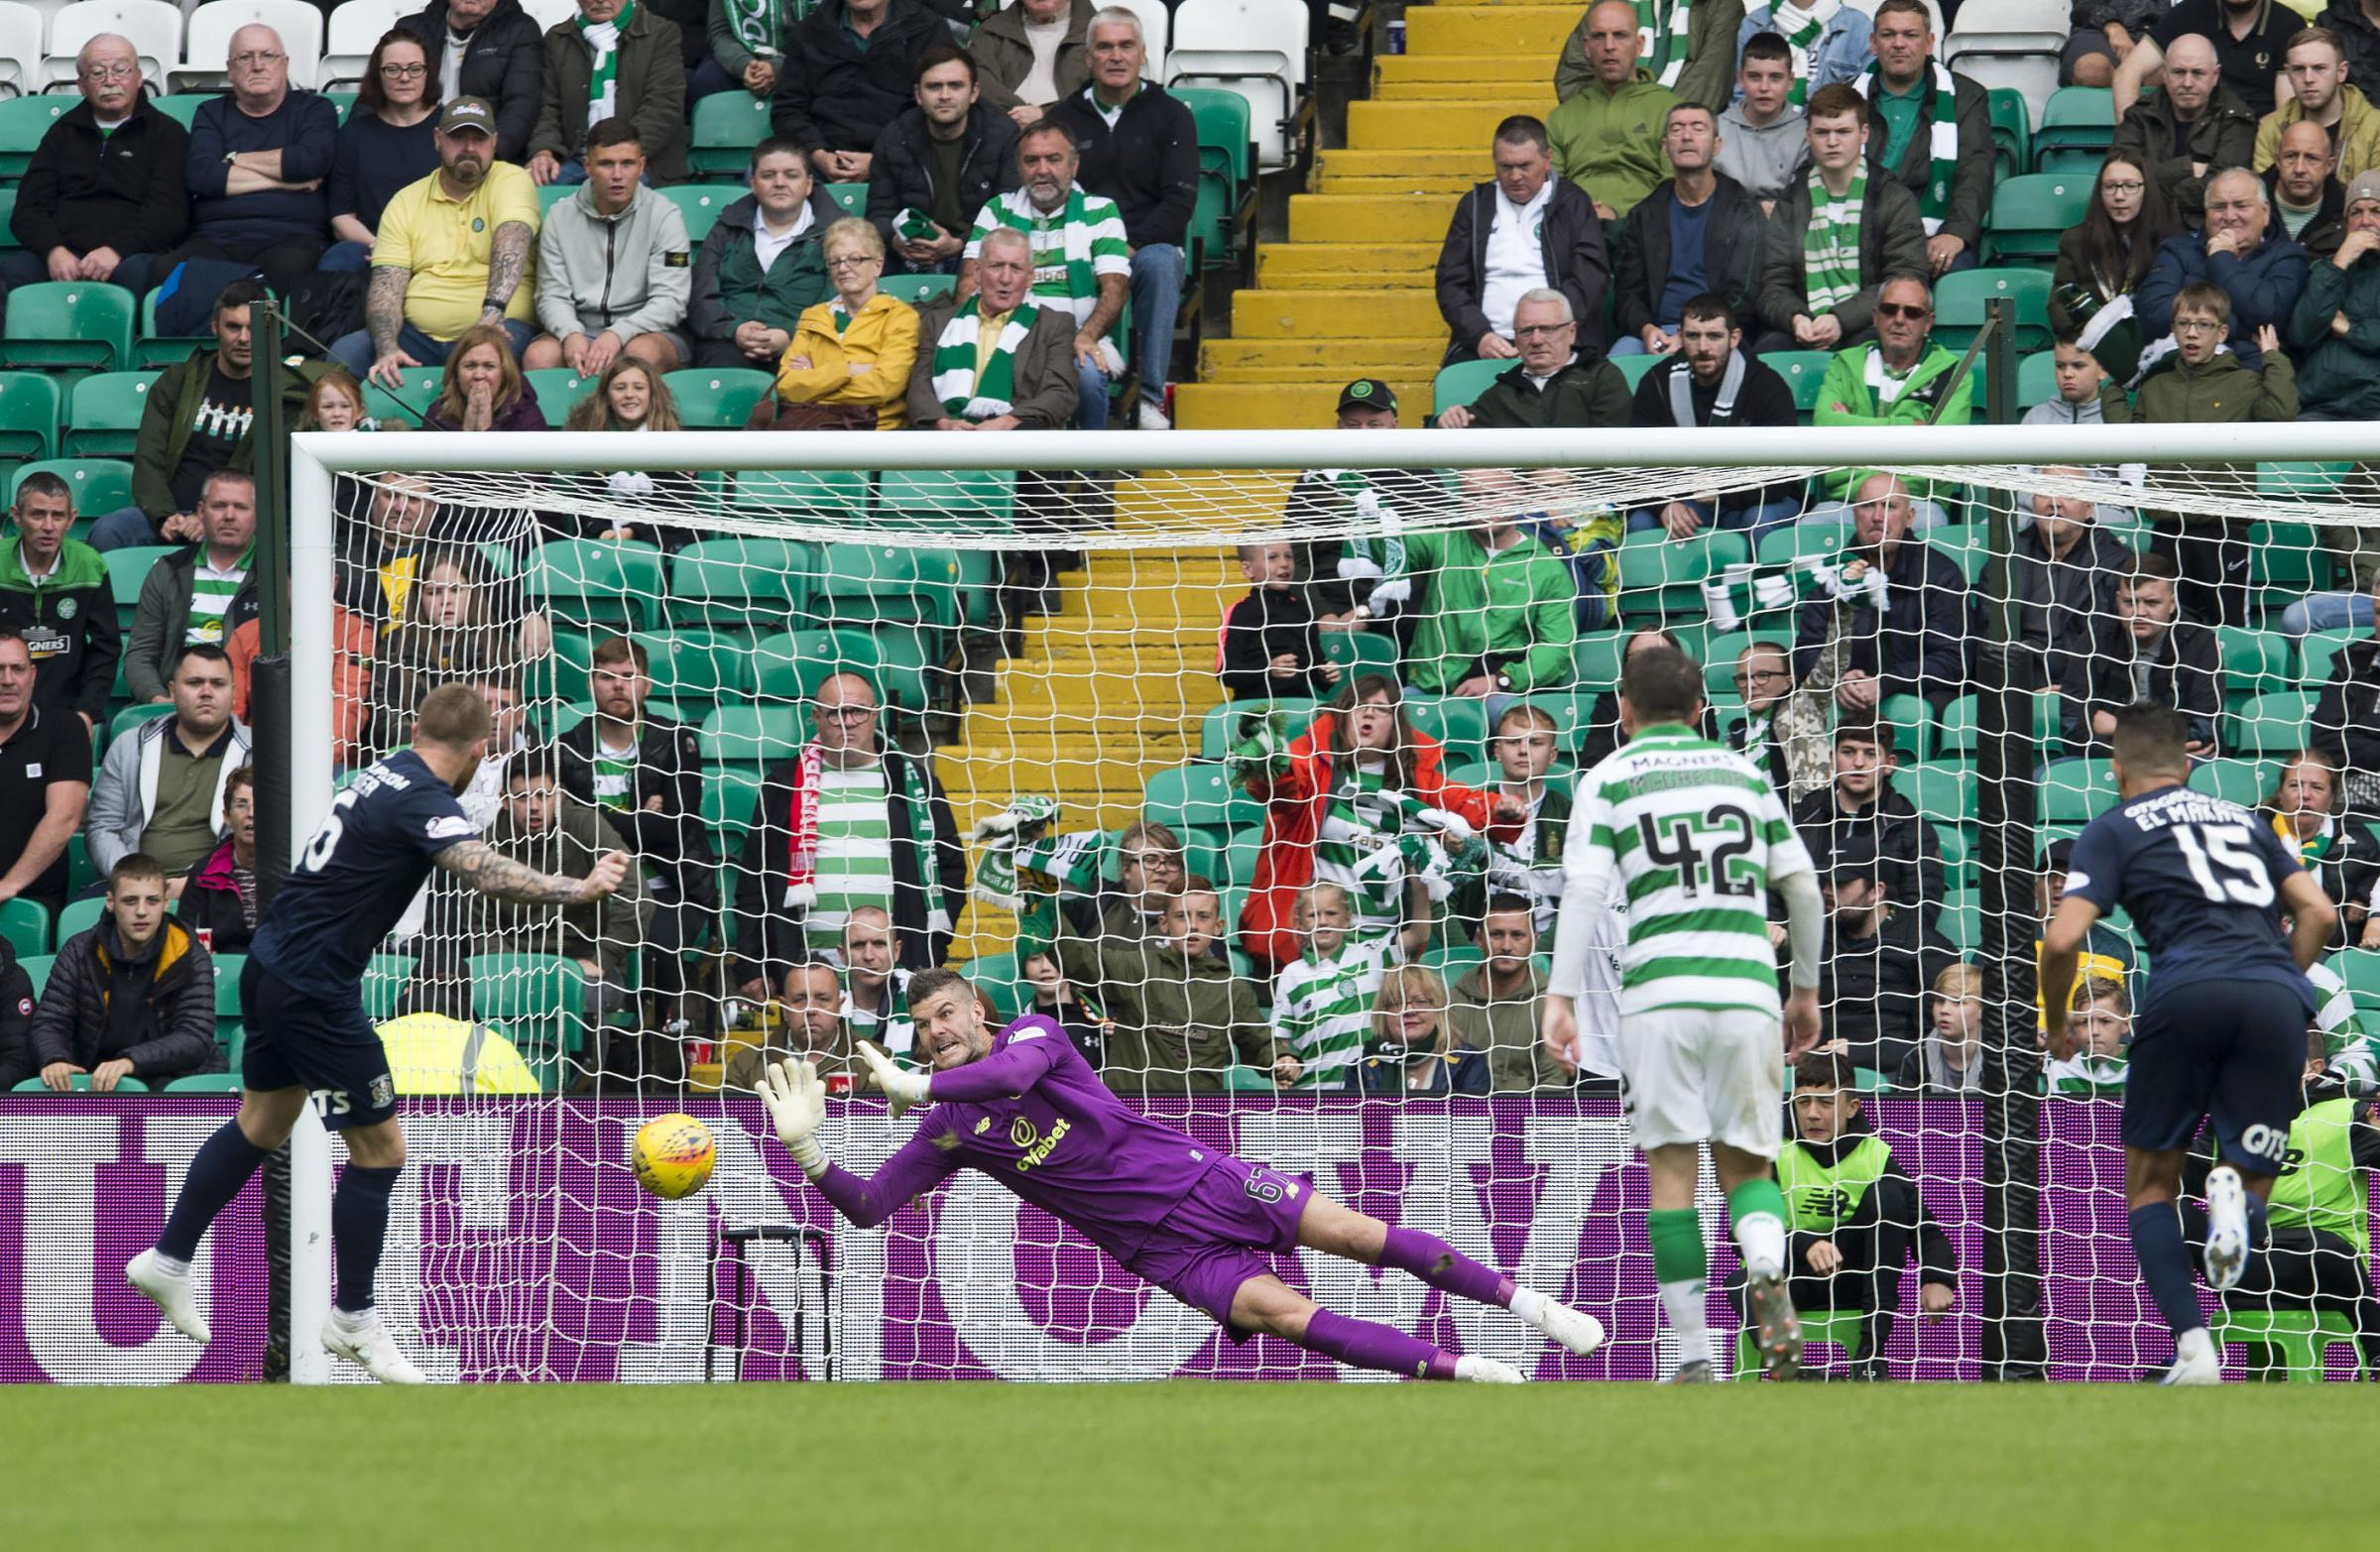 Fraser Forster: It's great to have played 200 games for Celtic